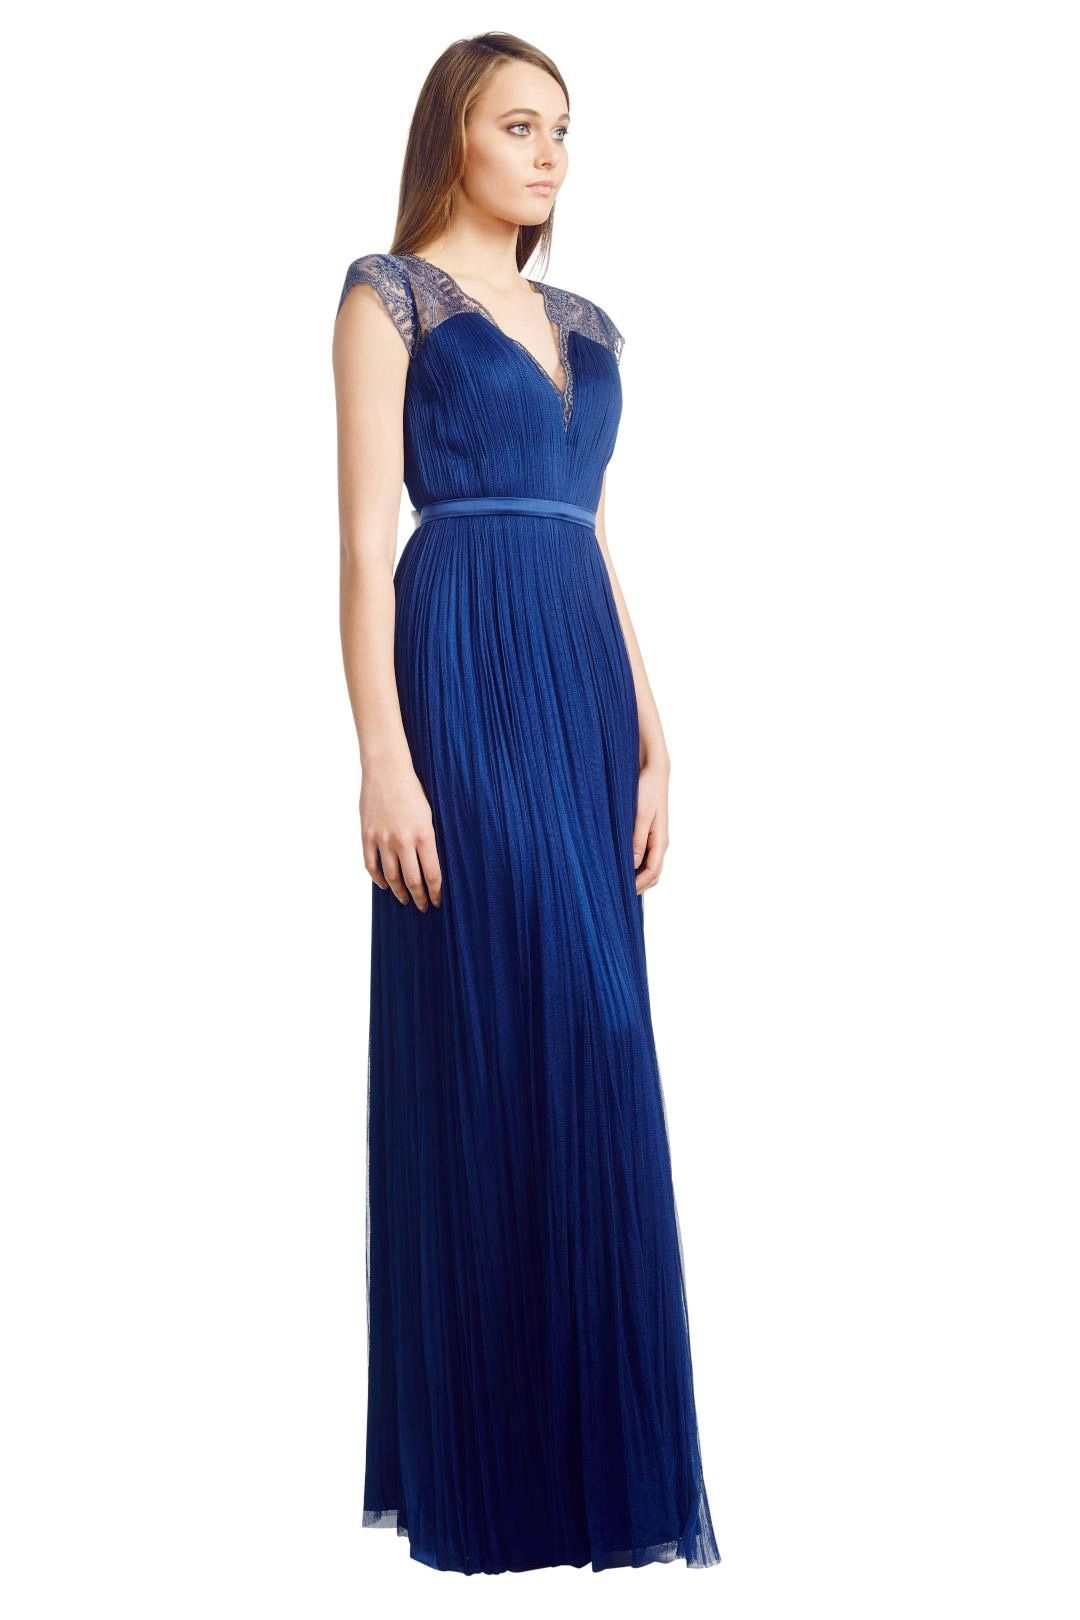 Catherine Deane - Silk Tulle Gown - Blue - Side